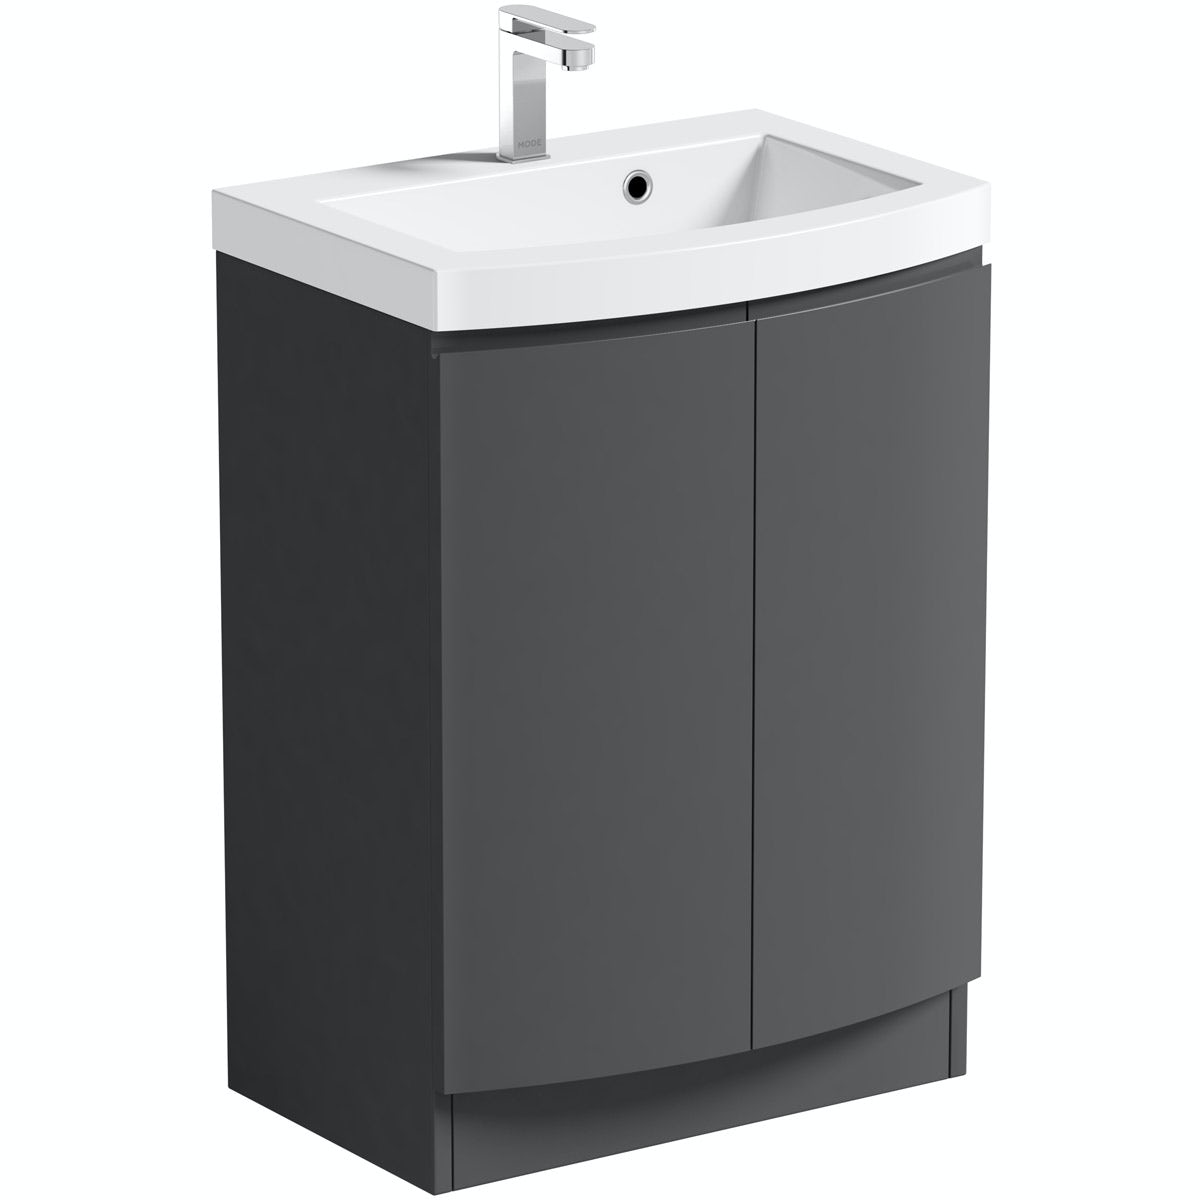 Mode Harrison slate floor standing door unit and basin 600mm